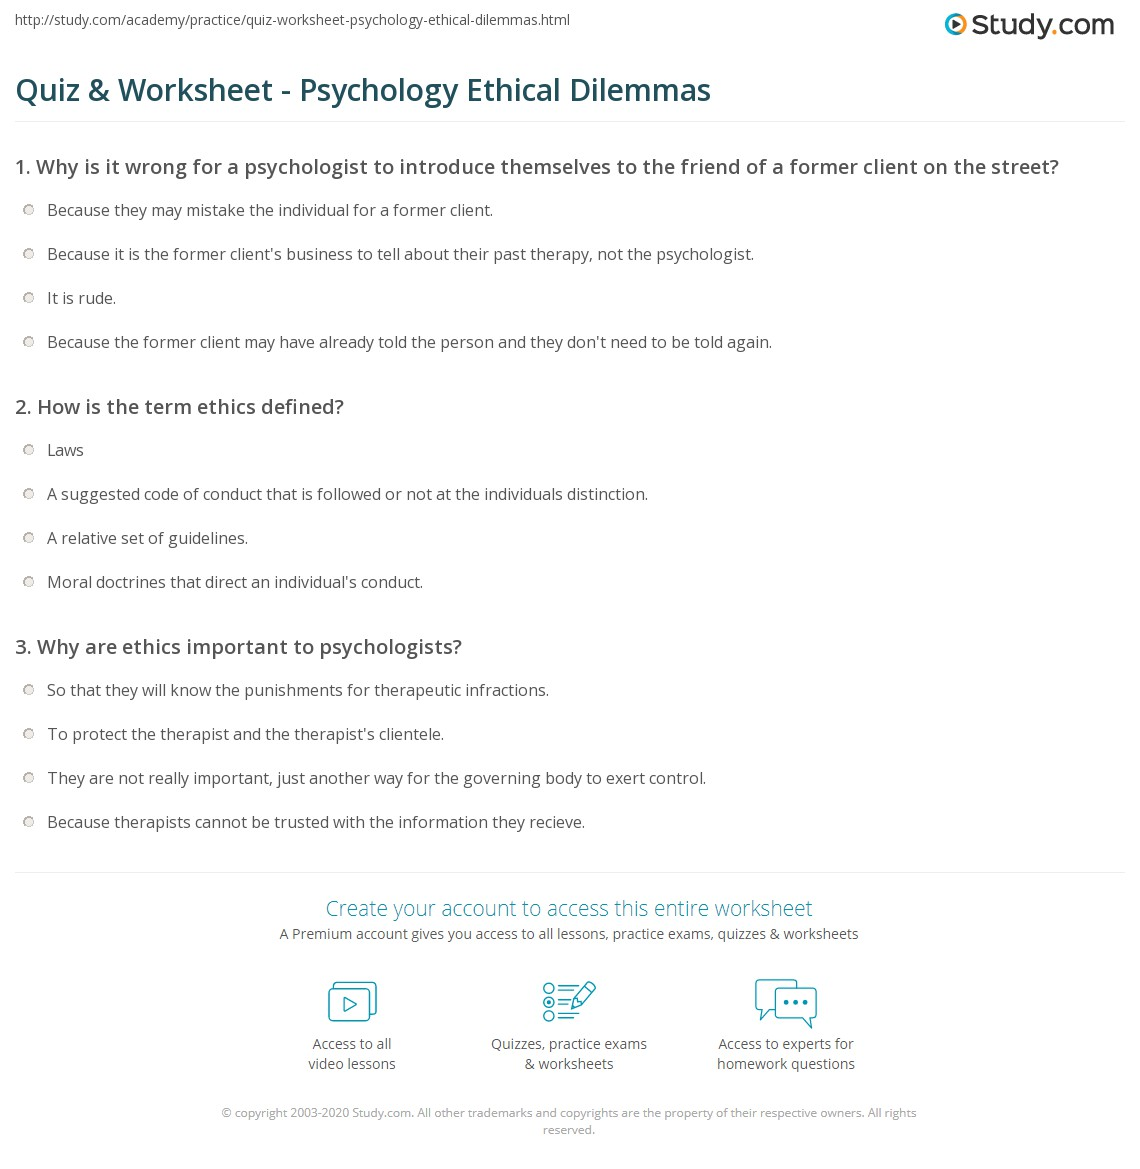 quiz & worksheet - psychology ethical dilemmas | study